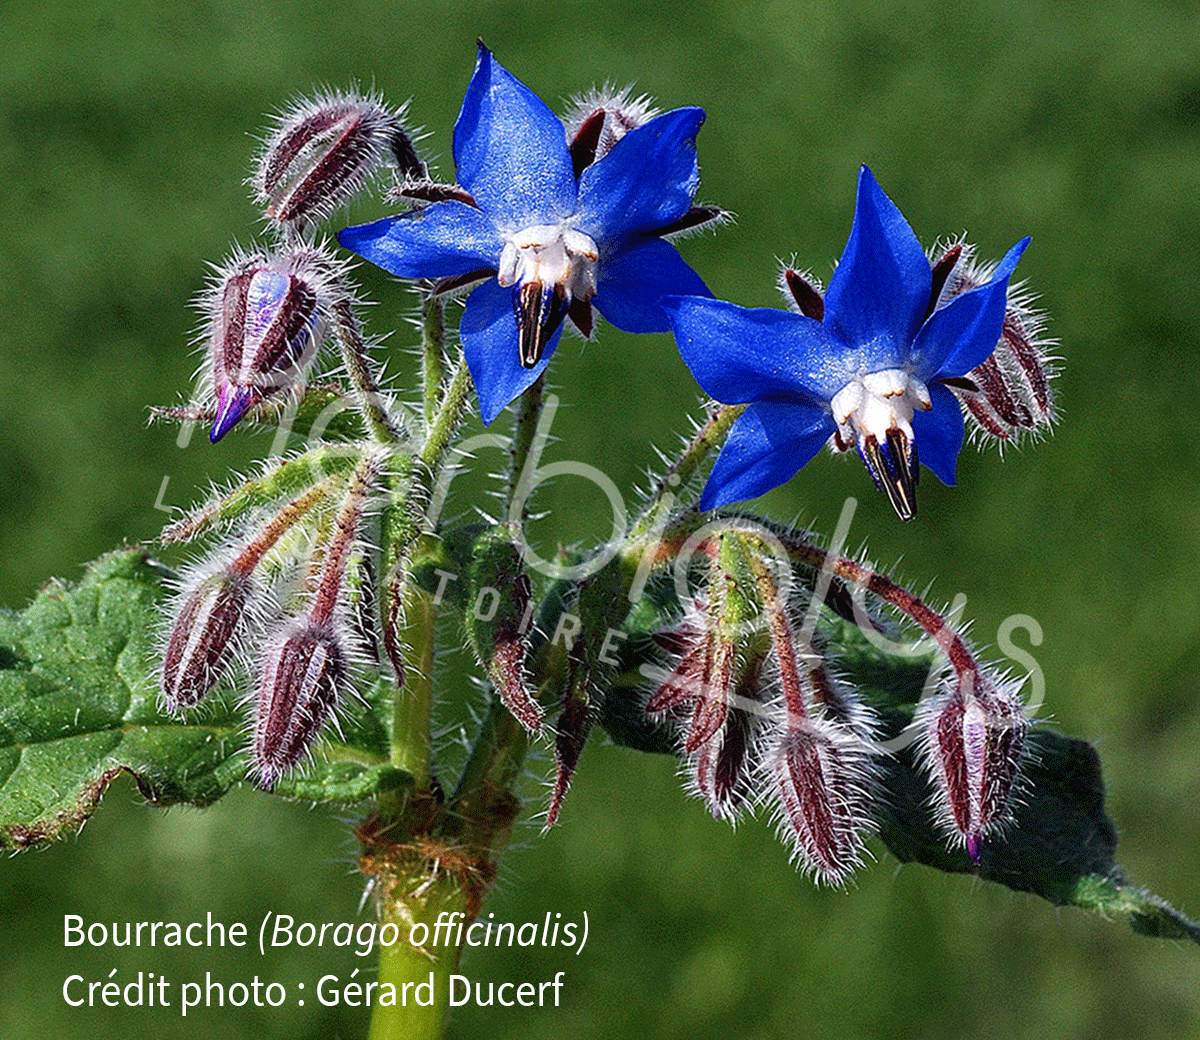 Herbiolys-phytotherapie-bourrache-borago-officinalis